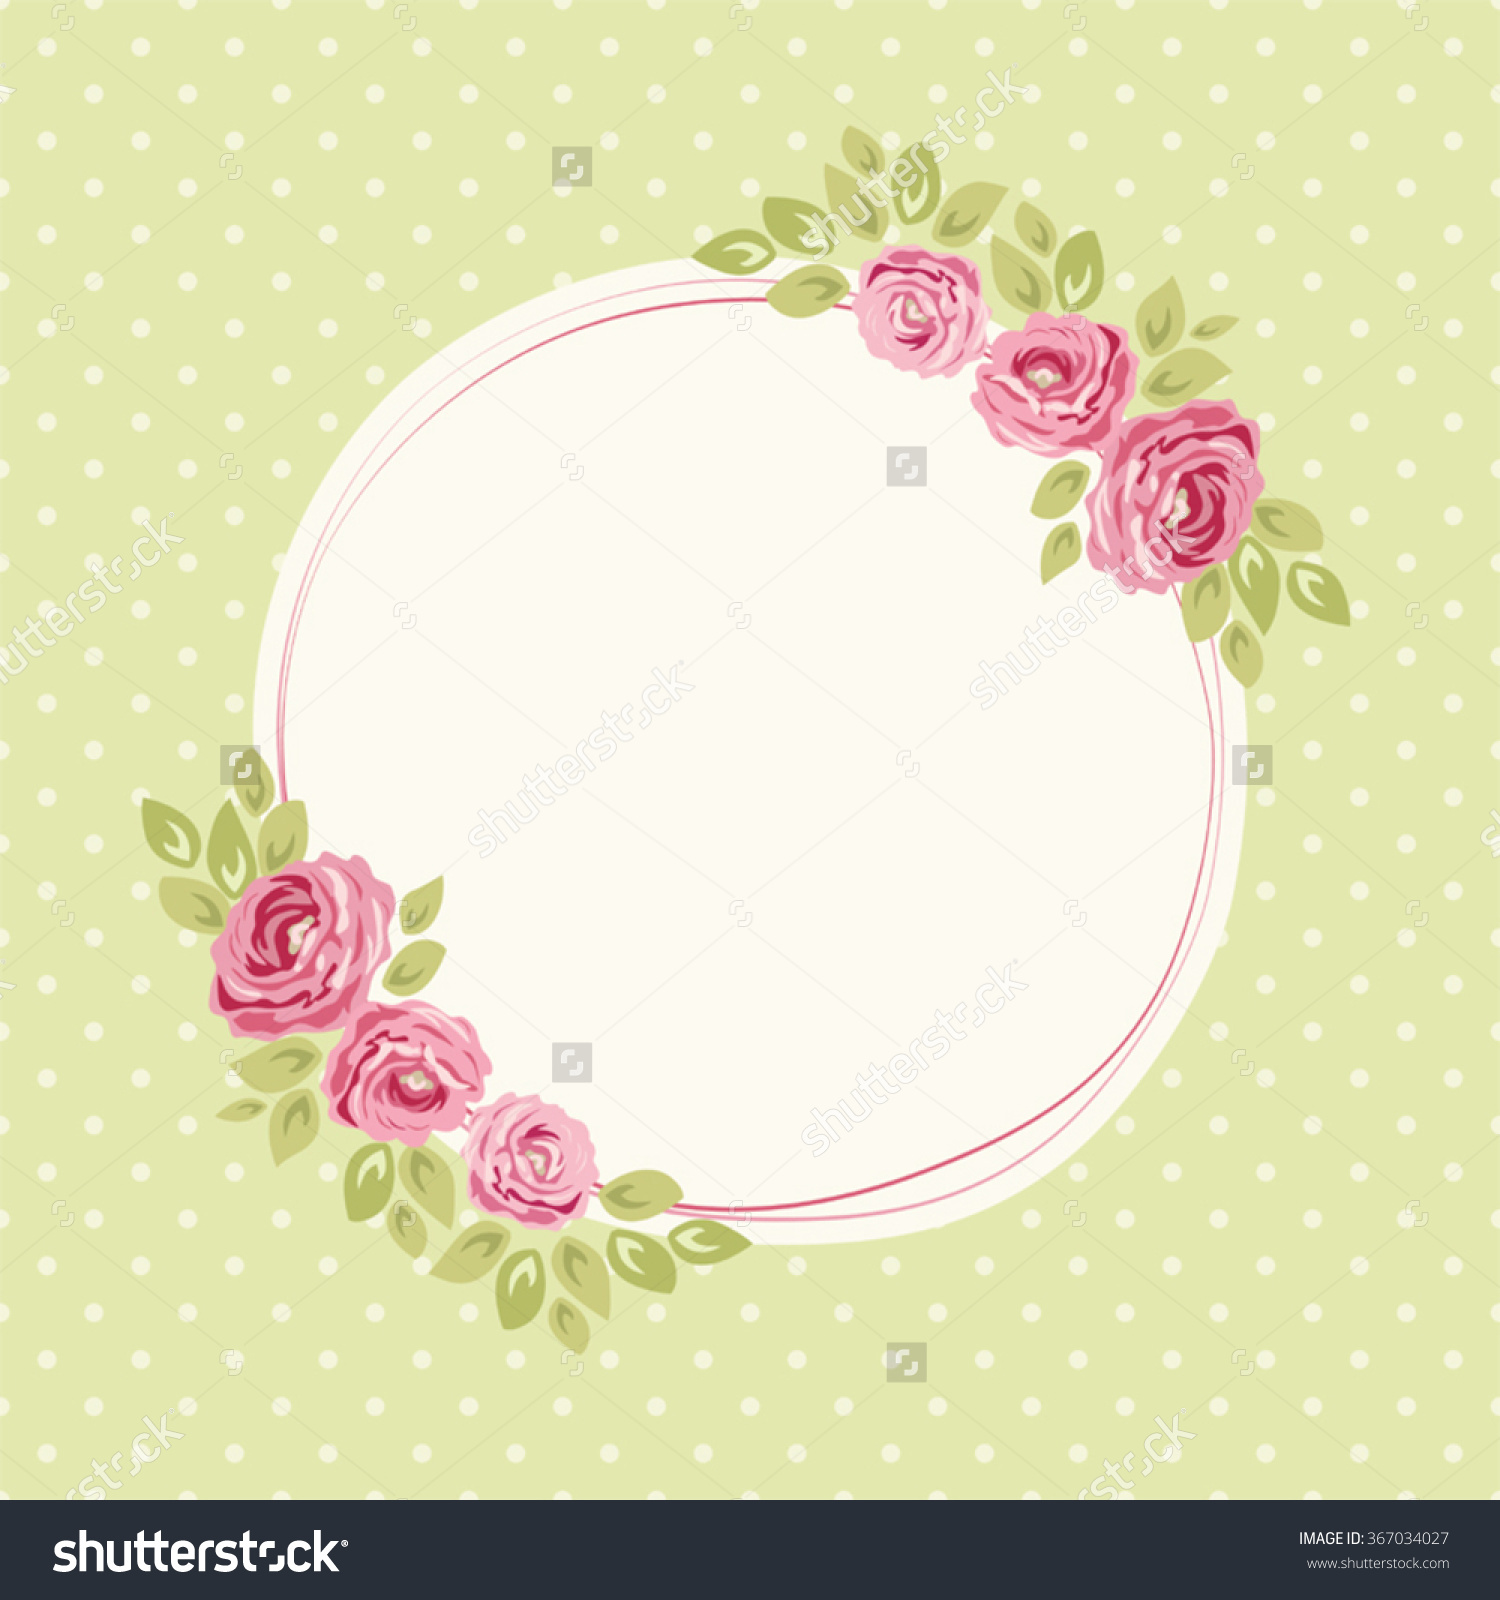 Cute Shabby Chic Frame With Roses On Seamless Polka Dots.